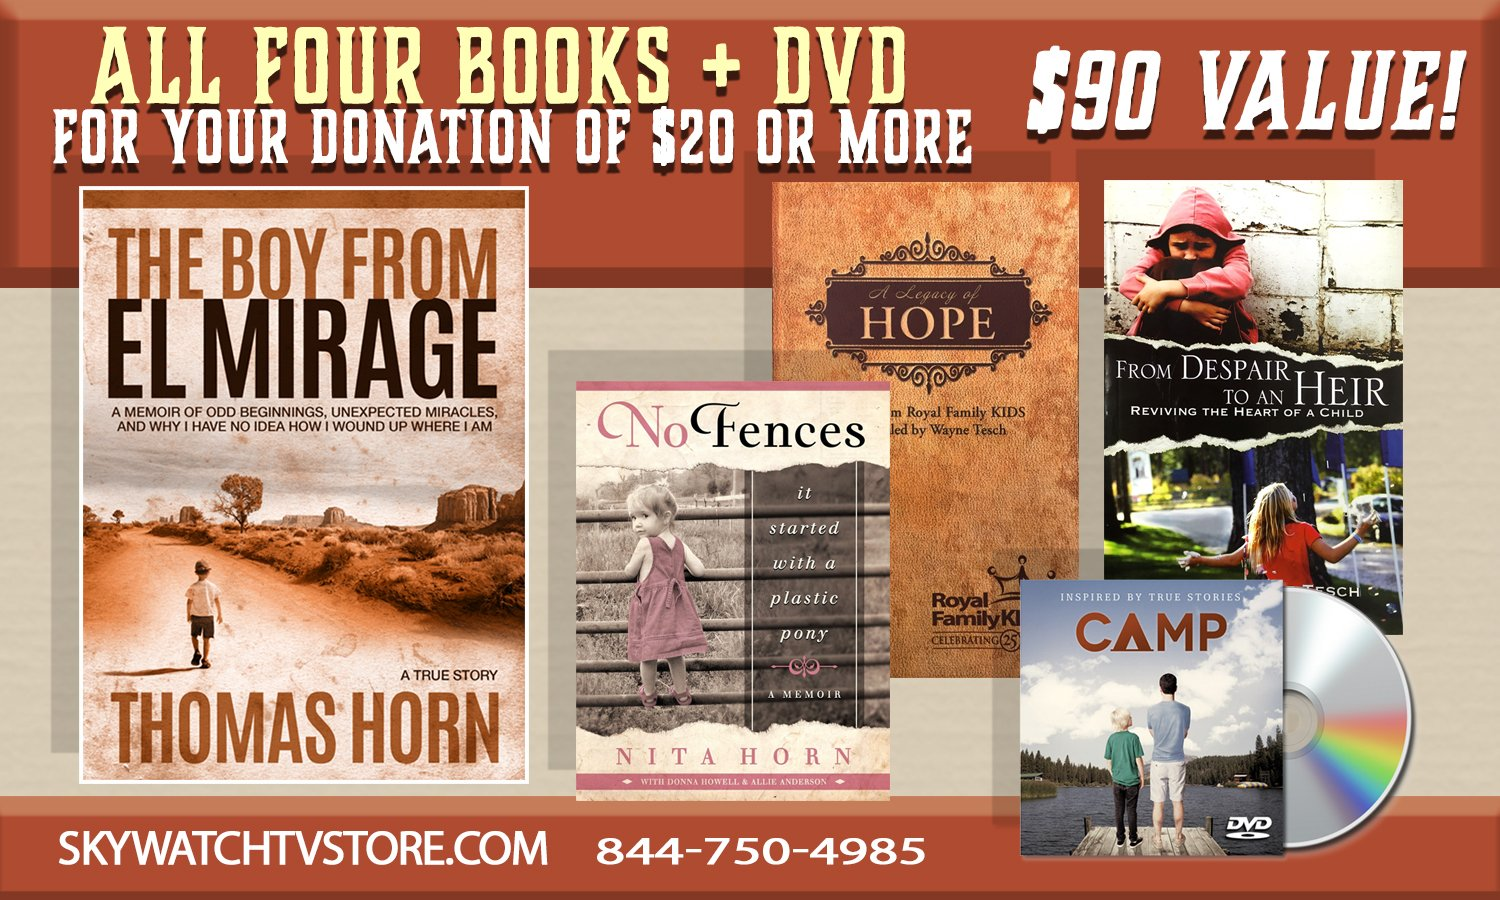 YOURS FOR ANY DONATION OF $20.00 OR MORE! LEARN THE SECRET TRUE STORY BEHIND DR. THOMAS HORN'S LIFE PLUS RECEIVE 4 BOOKS & DVD MOVIE!